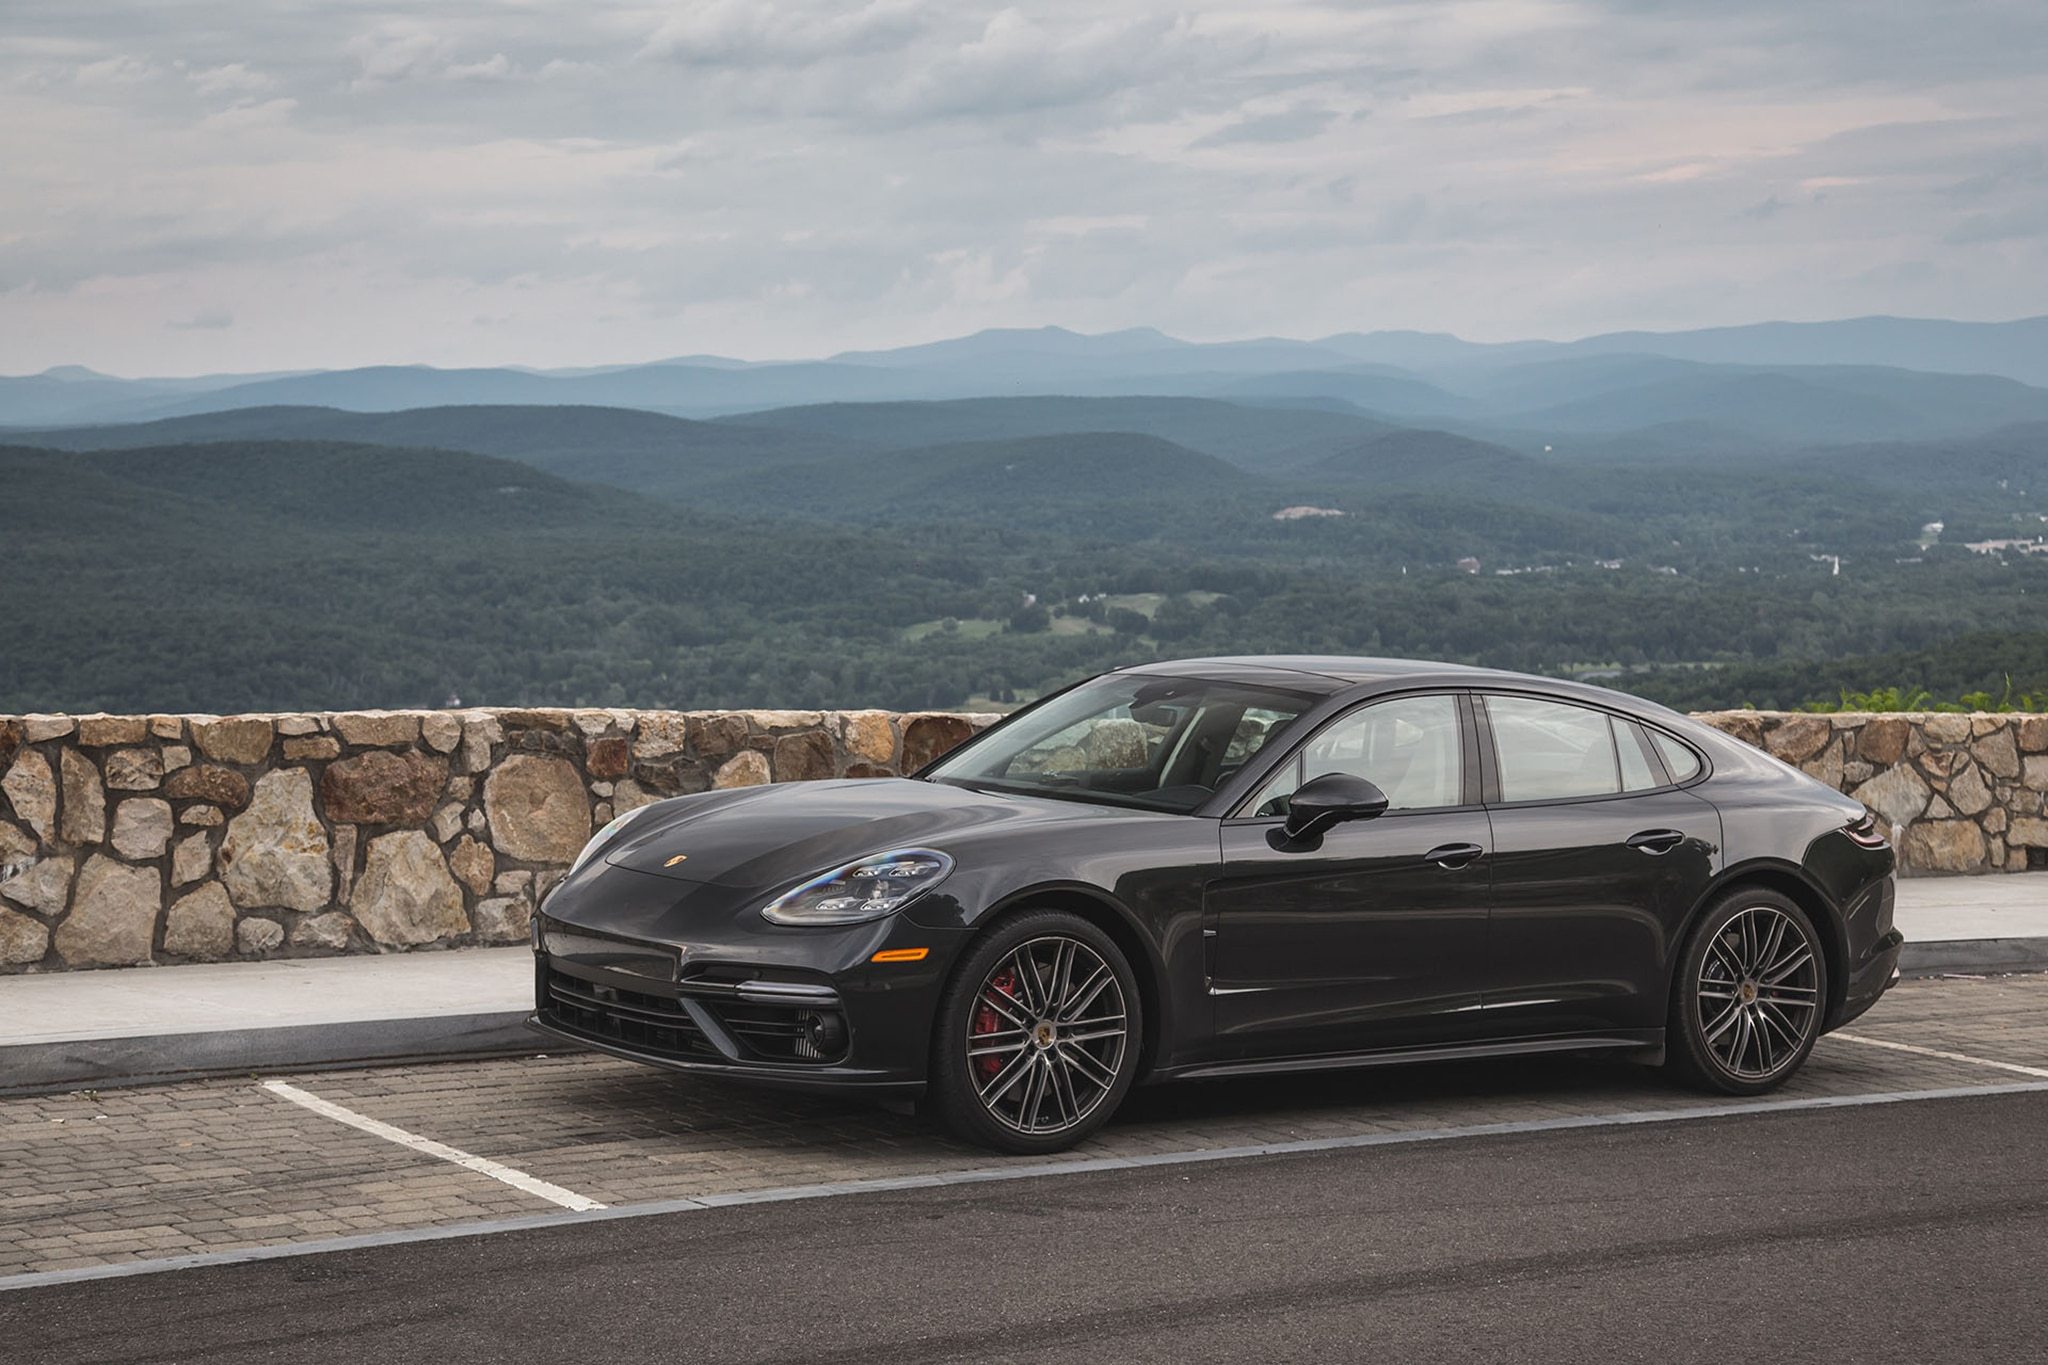 2017 Porsche Panamera Turbo One Week Review Automobile Magazine